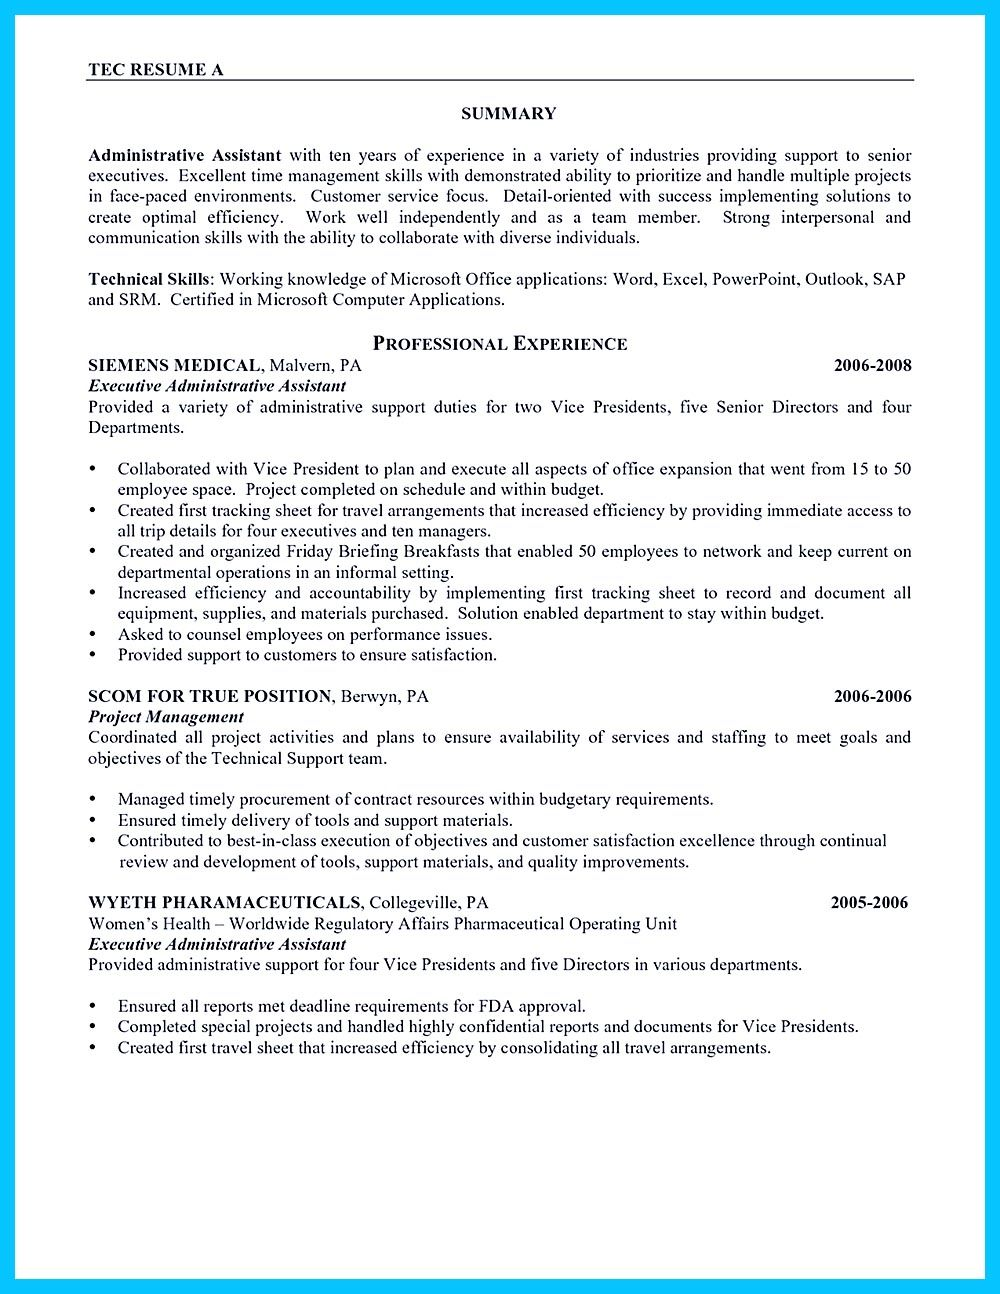 High Quality Entry Level Administrative Assistant Resume Samples